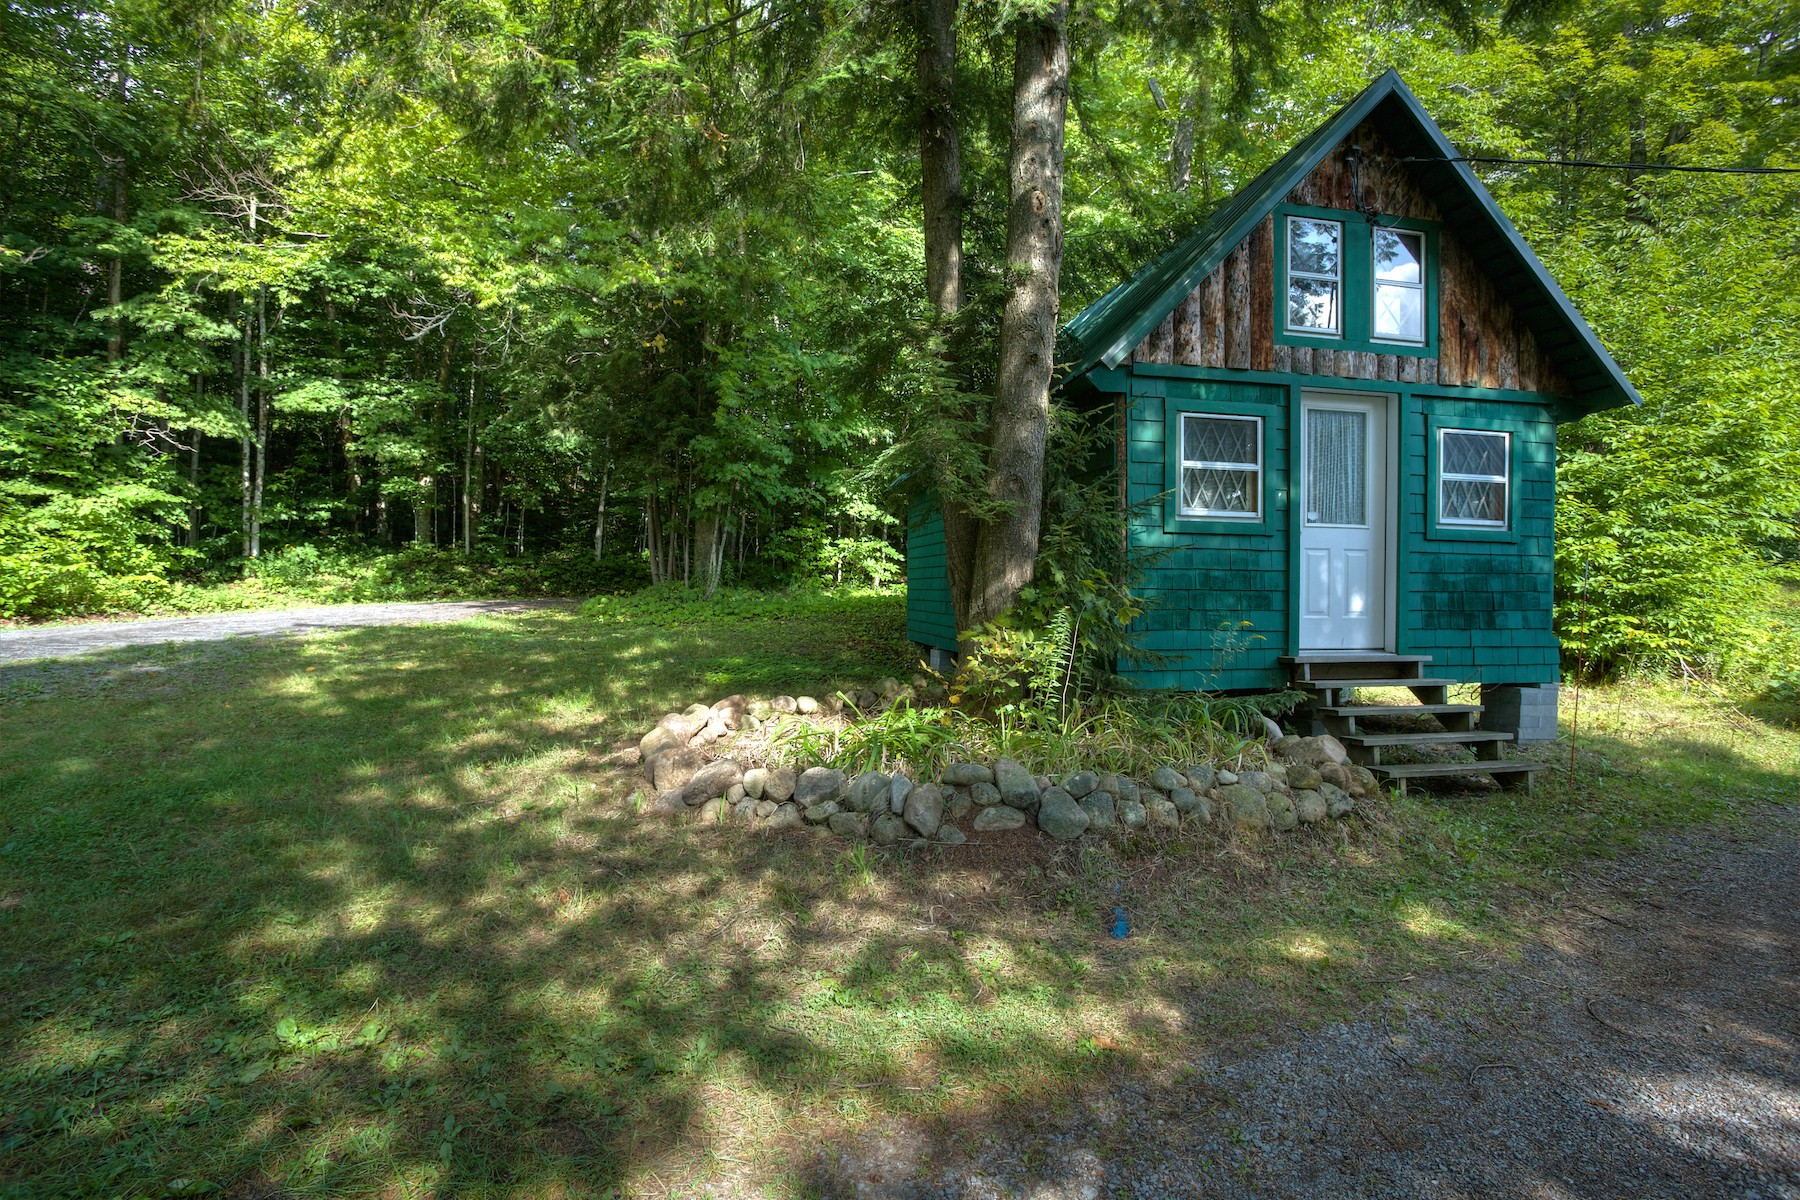 of rental george near book in accommodations adirondacks cabin now rentals cabins your lake shot adirondack exterior